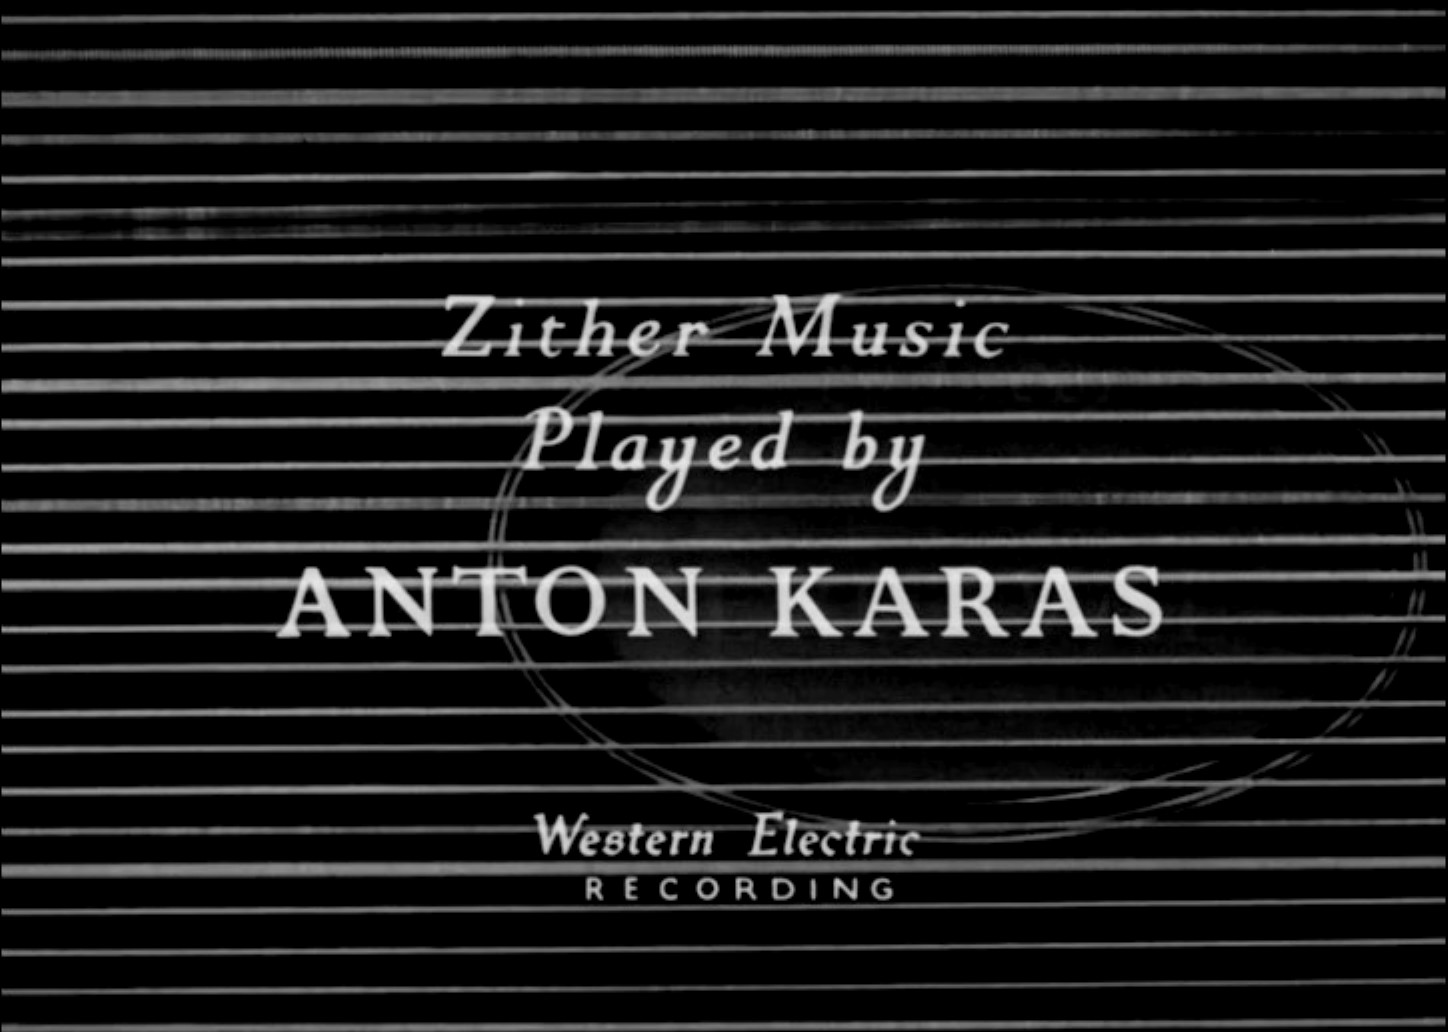 Zither music title from The Third Man